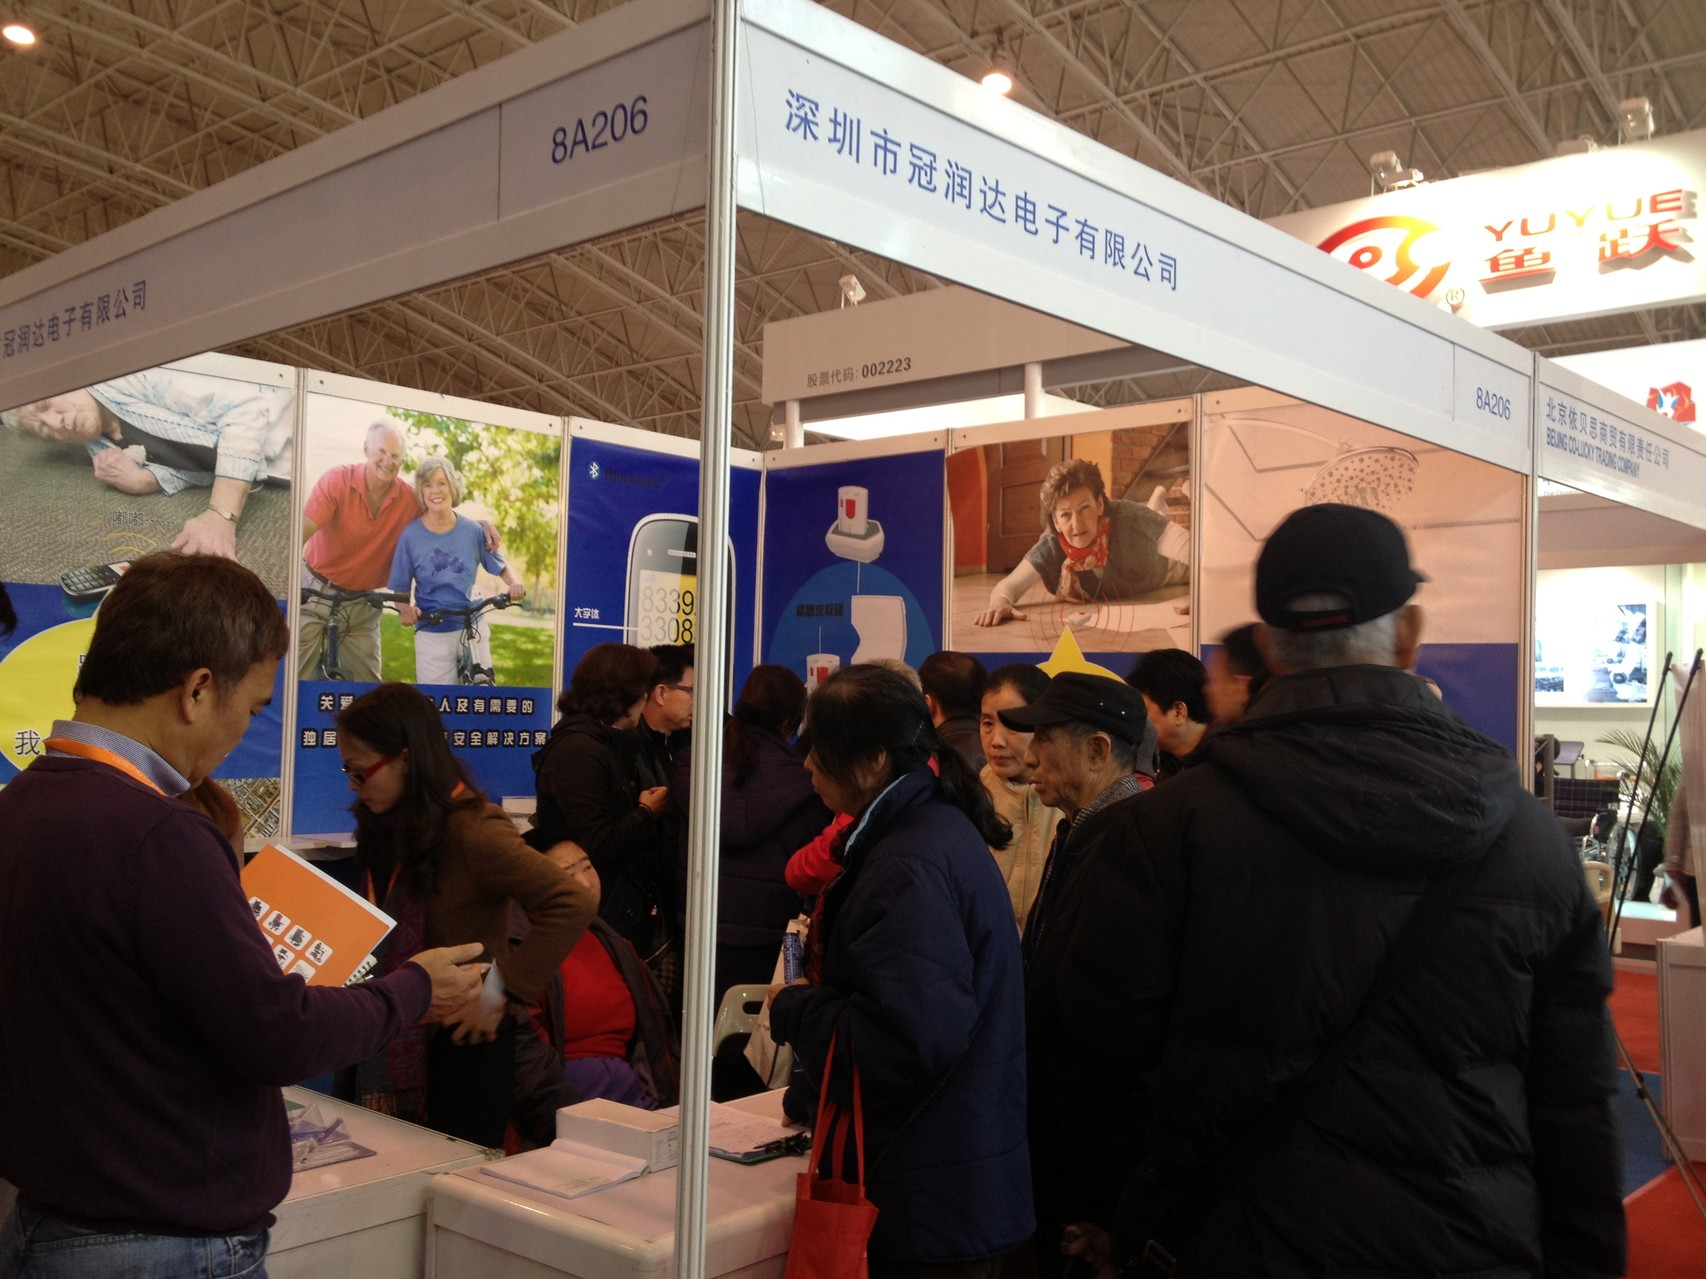 Senior Care Group is exhibiting in Beijing